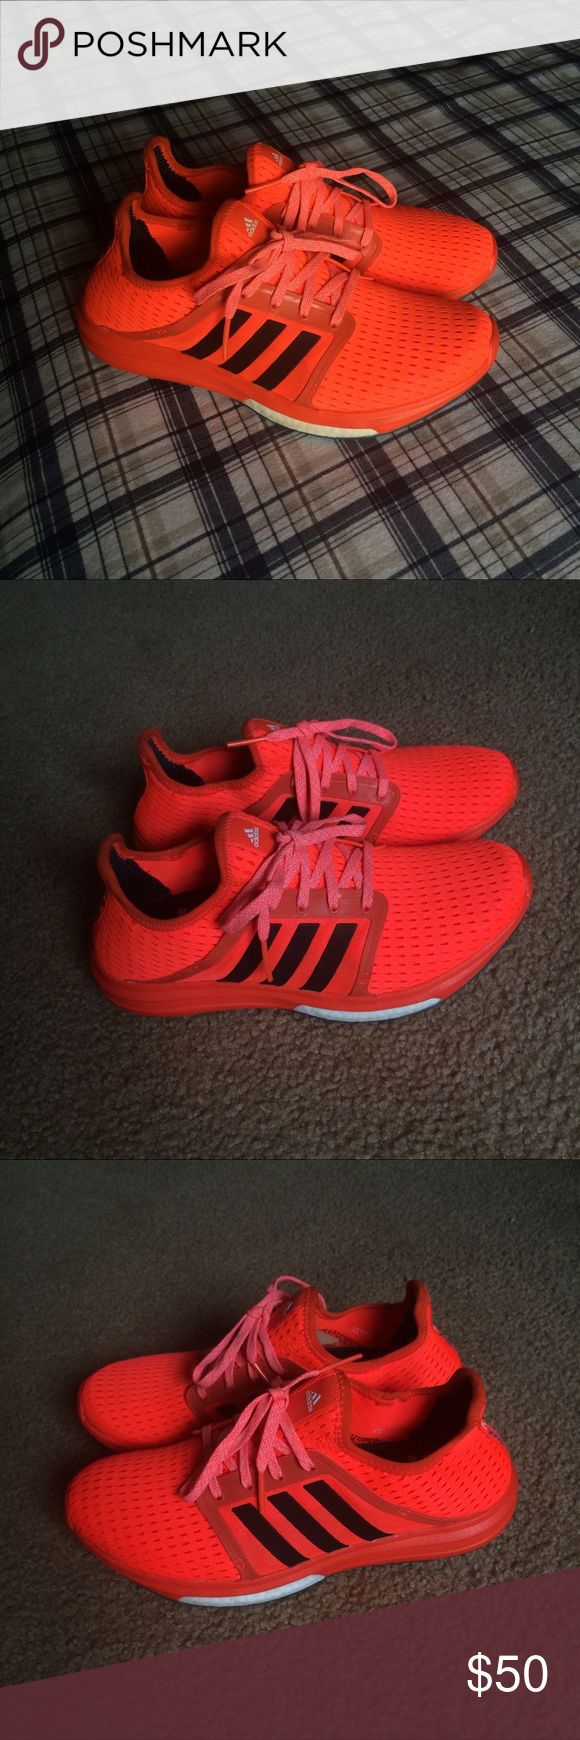 Adidas Cc Sonic Boost Used once. Received as a gift. No box included. Good as new. adidas Shoes Athletic Shoes